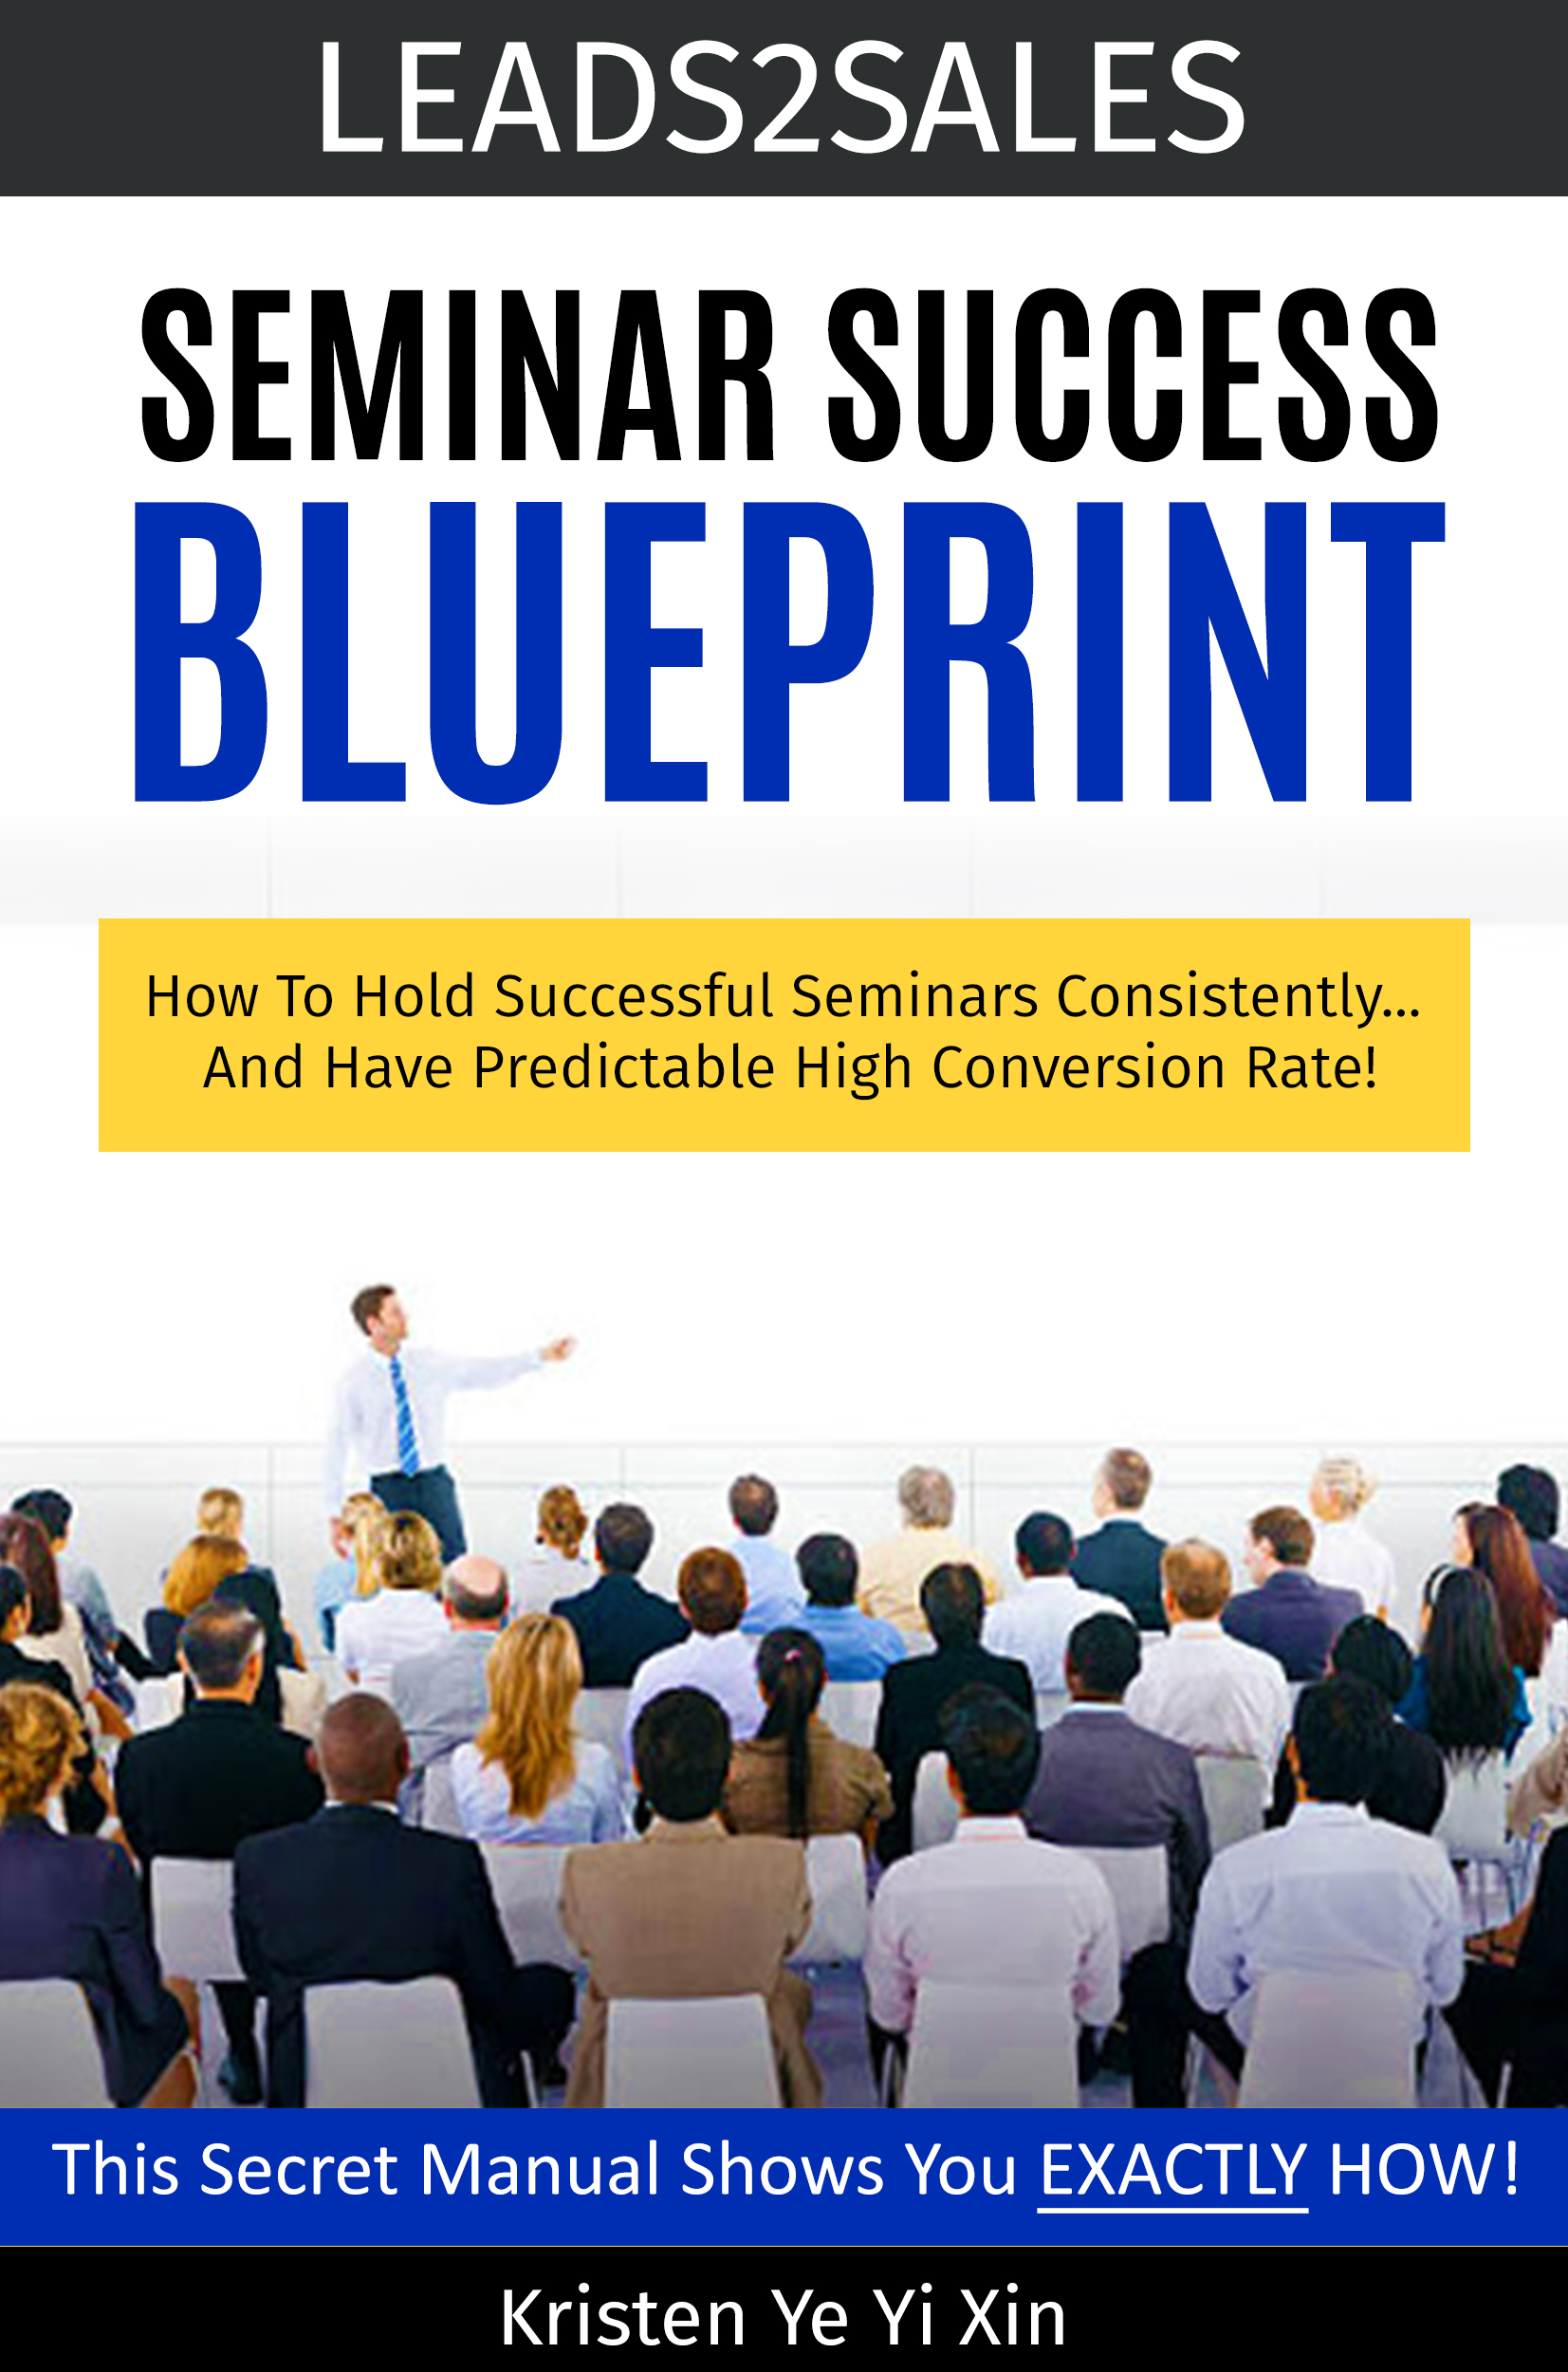 Leads2sales free seminar success blueprint e book seminar conversions this malvernweather Image collections